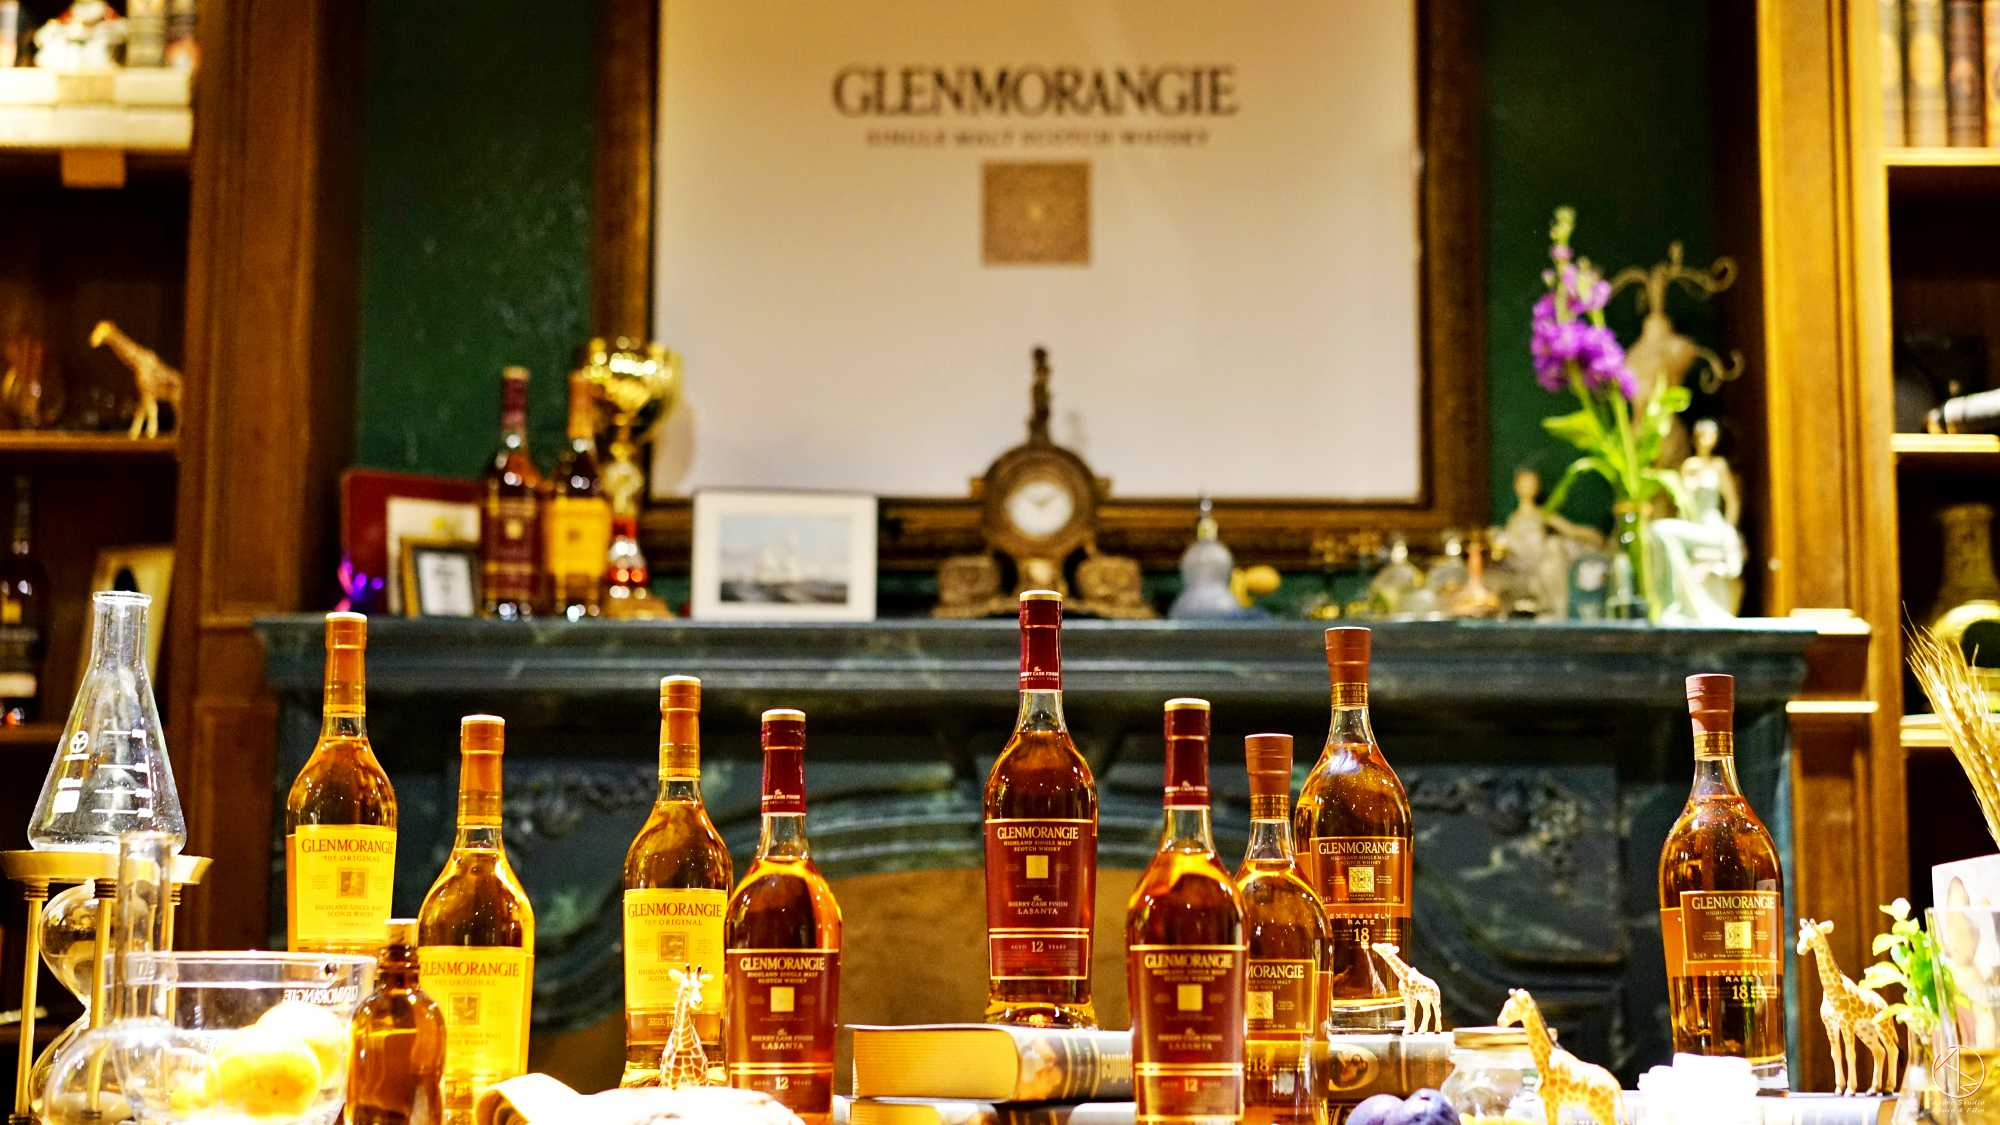 格蘭傑私藏系列全集合,Glenmorangie 2019 Private Edition All Collect